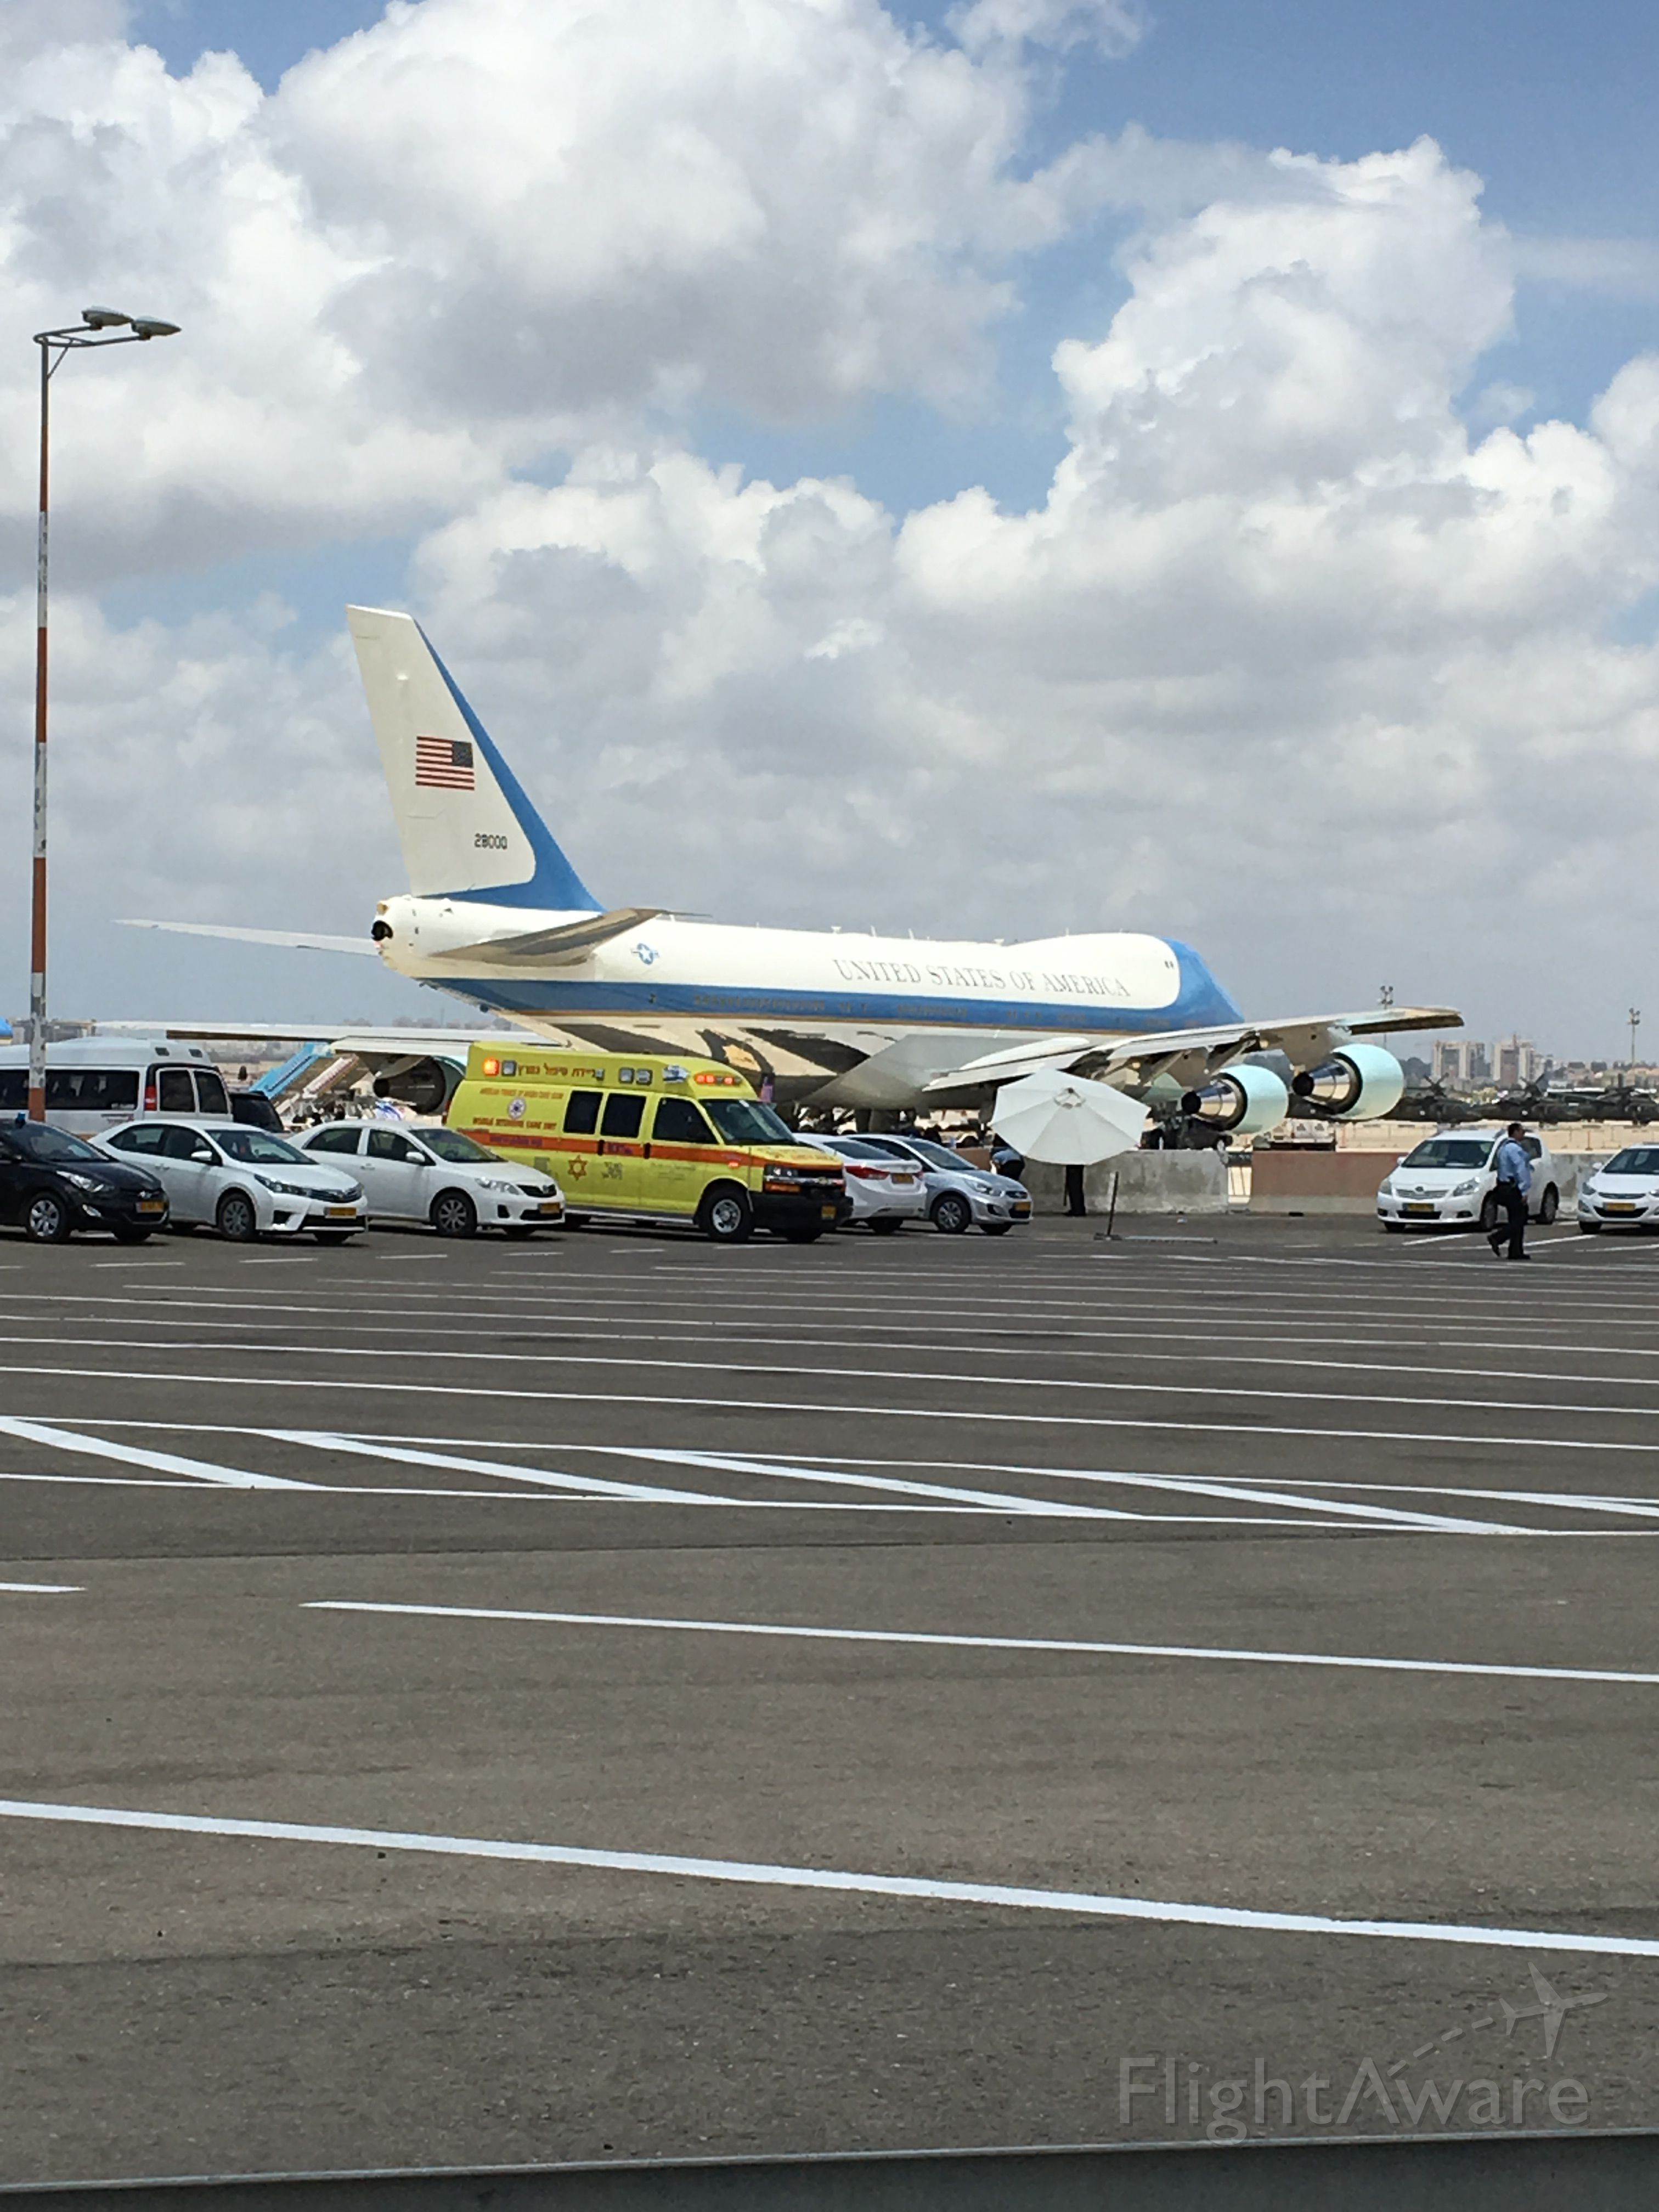 28000 — - Air Force 1, on the ground at Ben-Gurion Airport on May 23rd, 2017